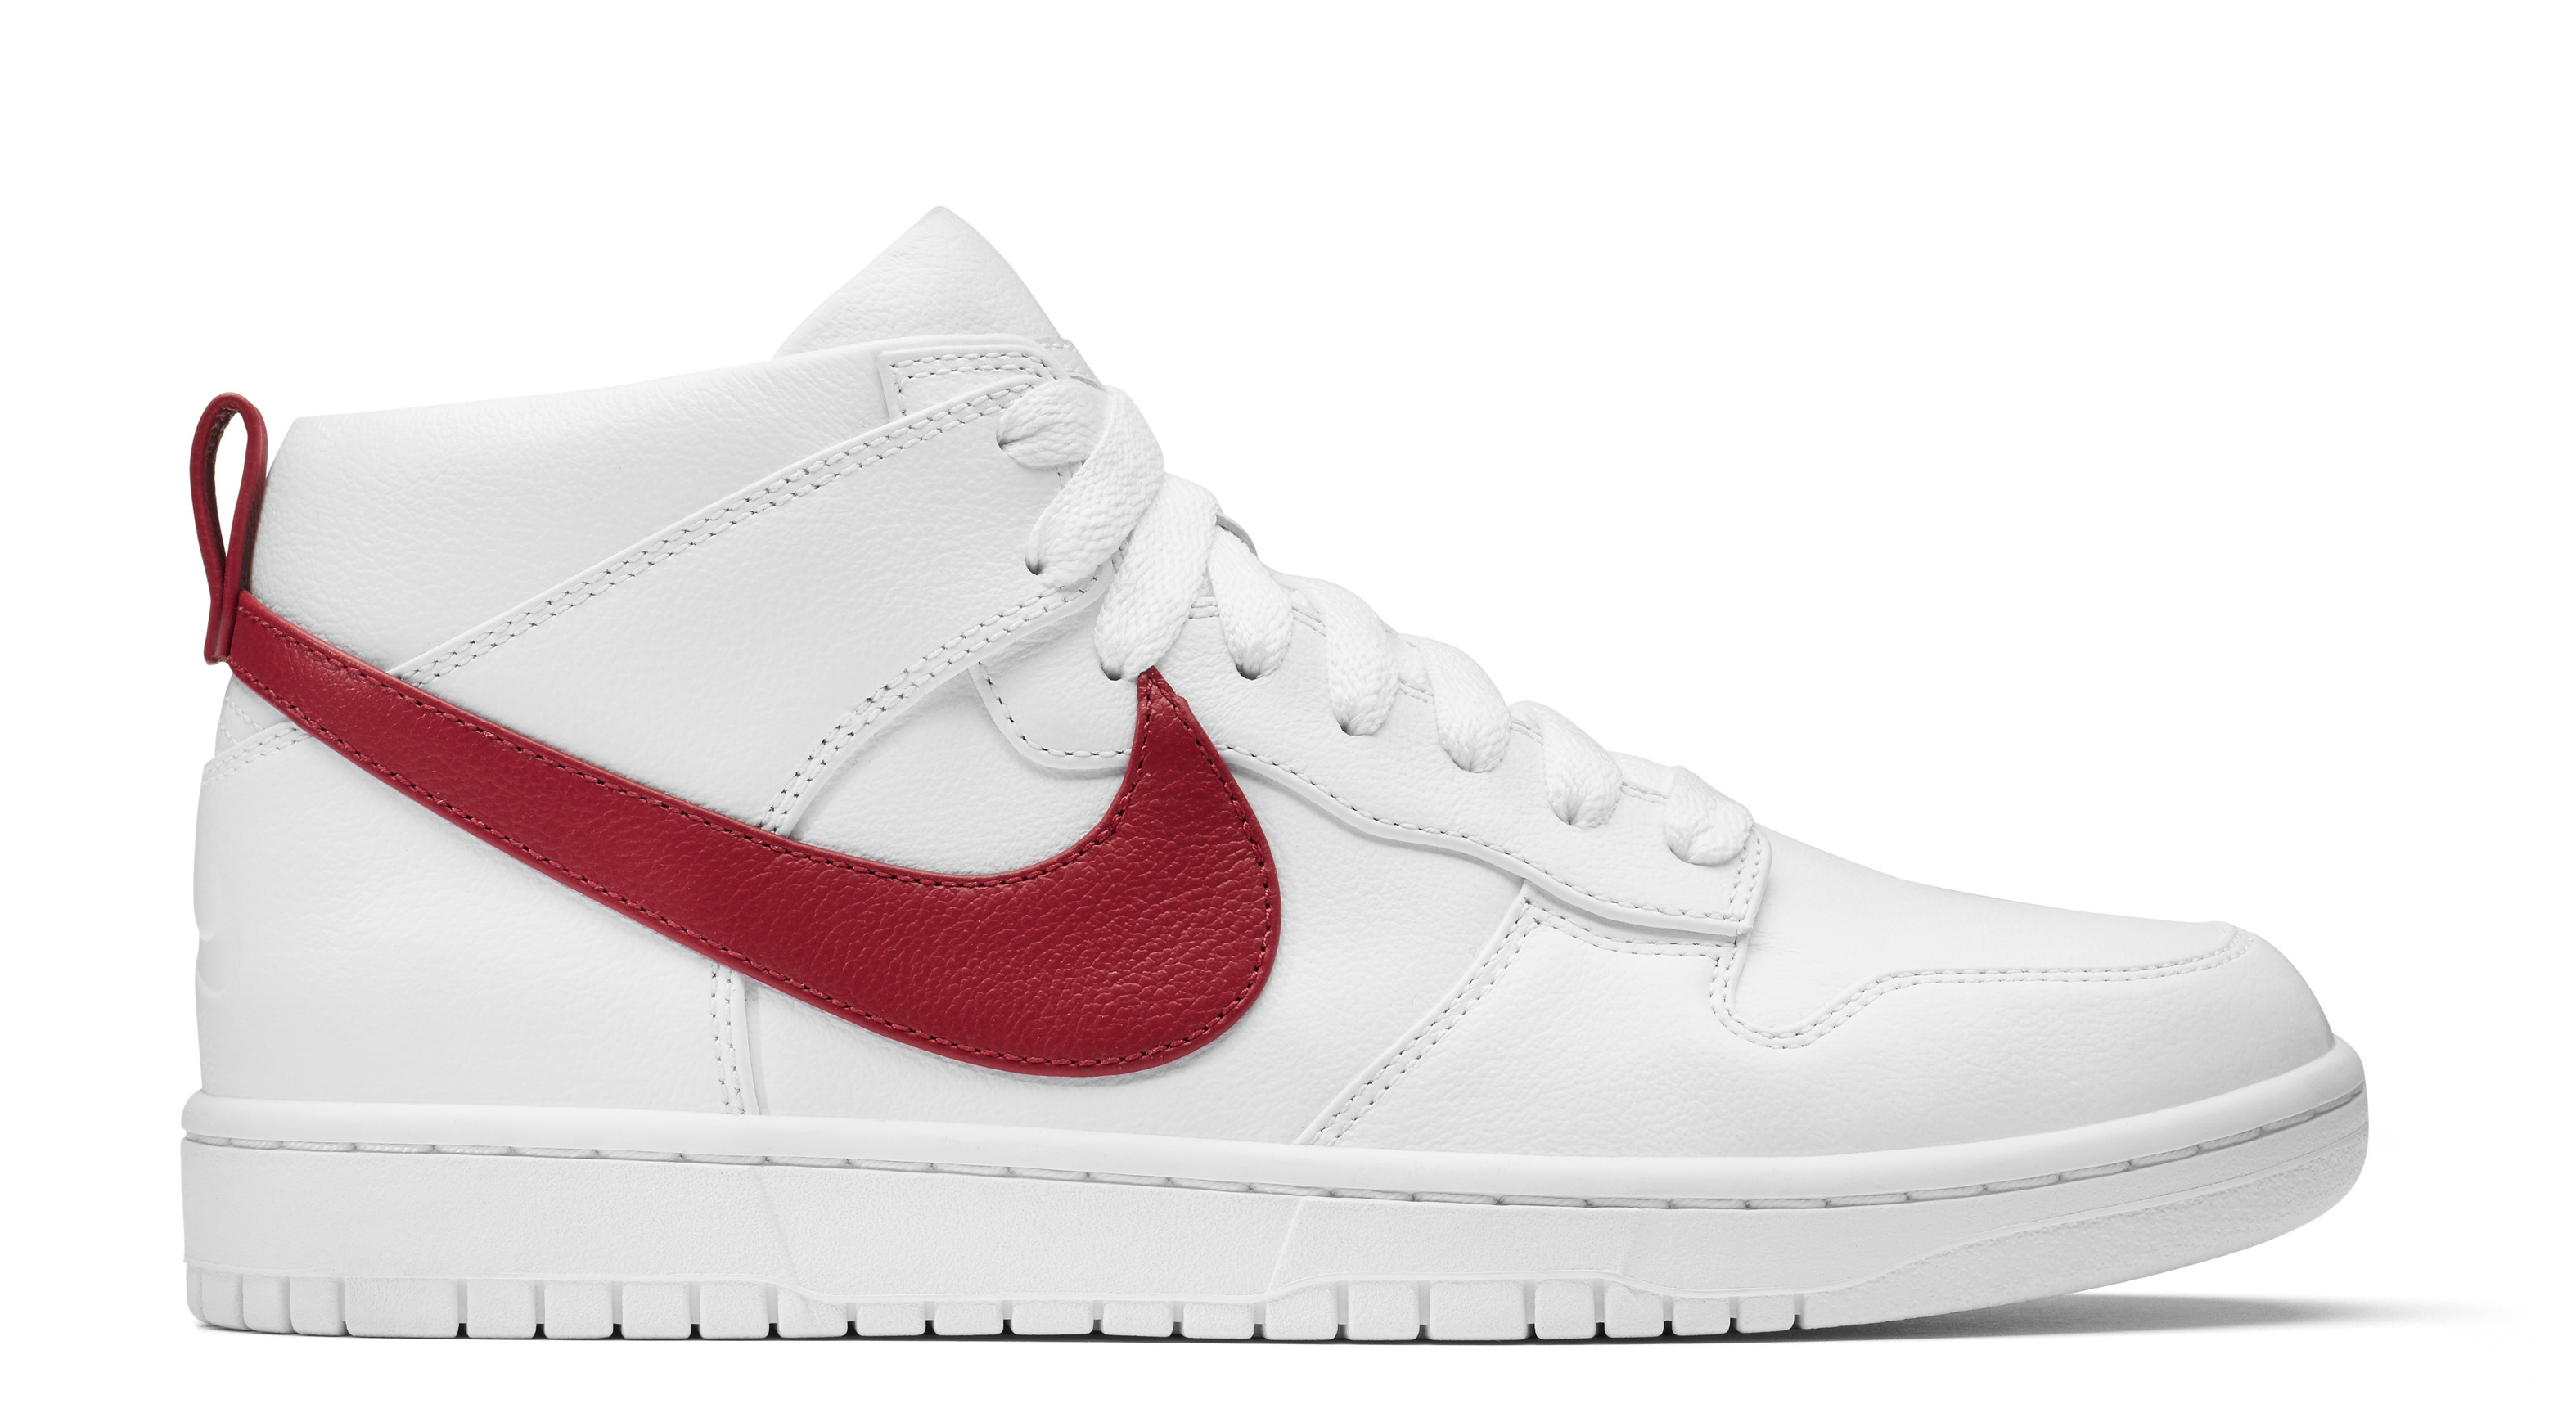 competitive price 7f2fe 28e09 Nike Dunk Lux Chukka Riccardo Tisci White Red